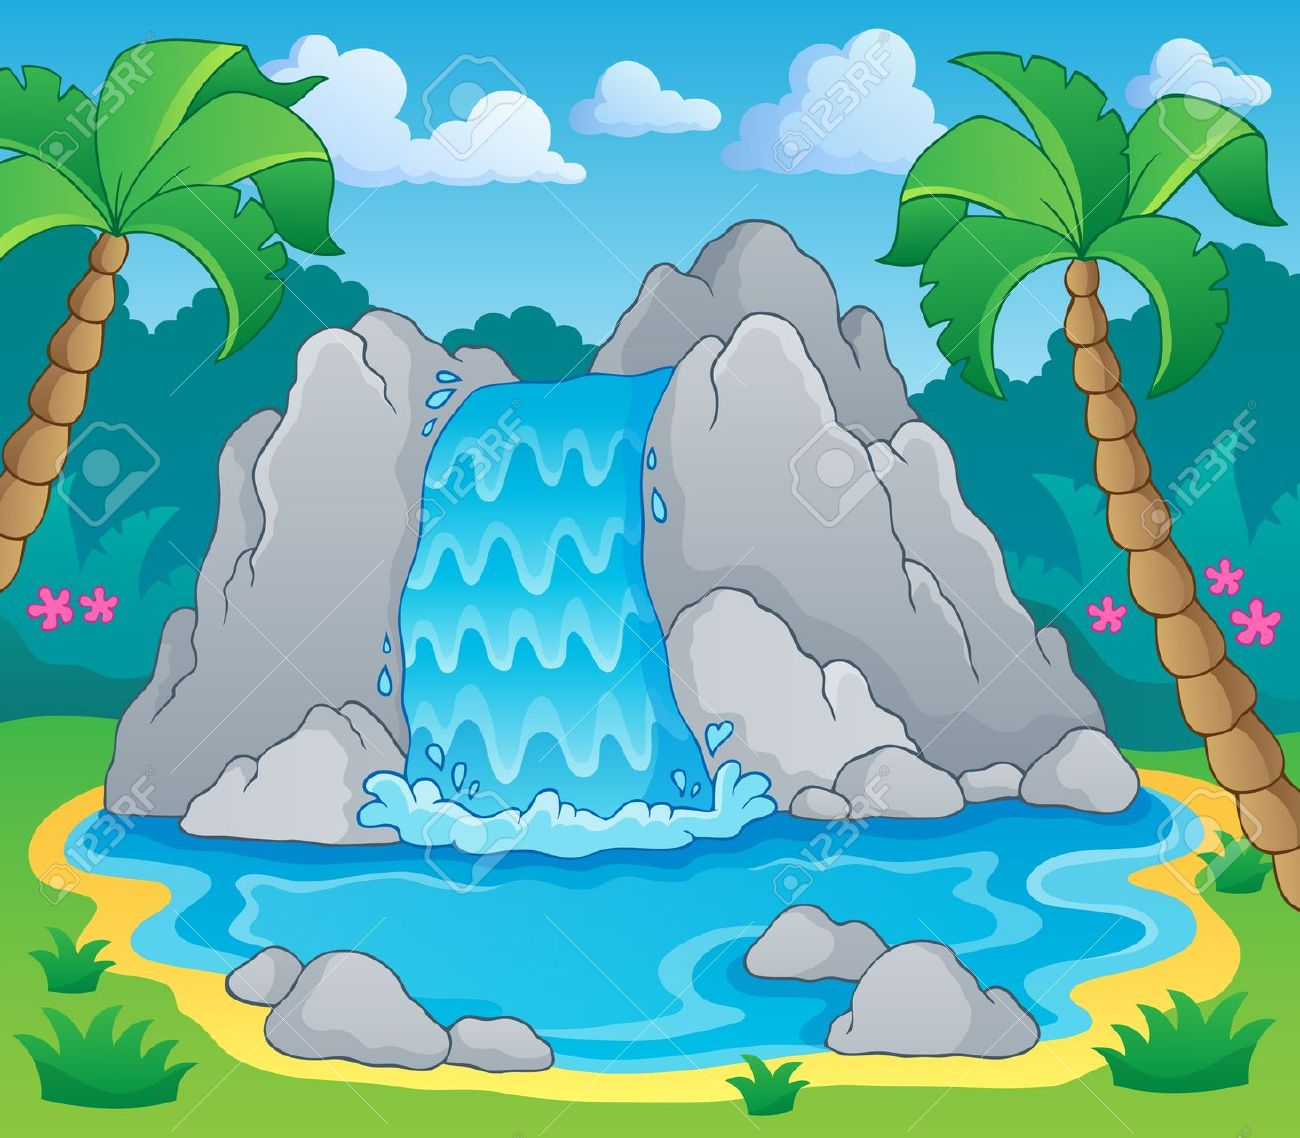 waterfall: Image with . - Waterfall Clipart